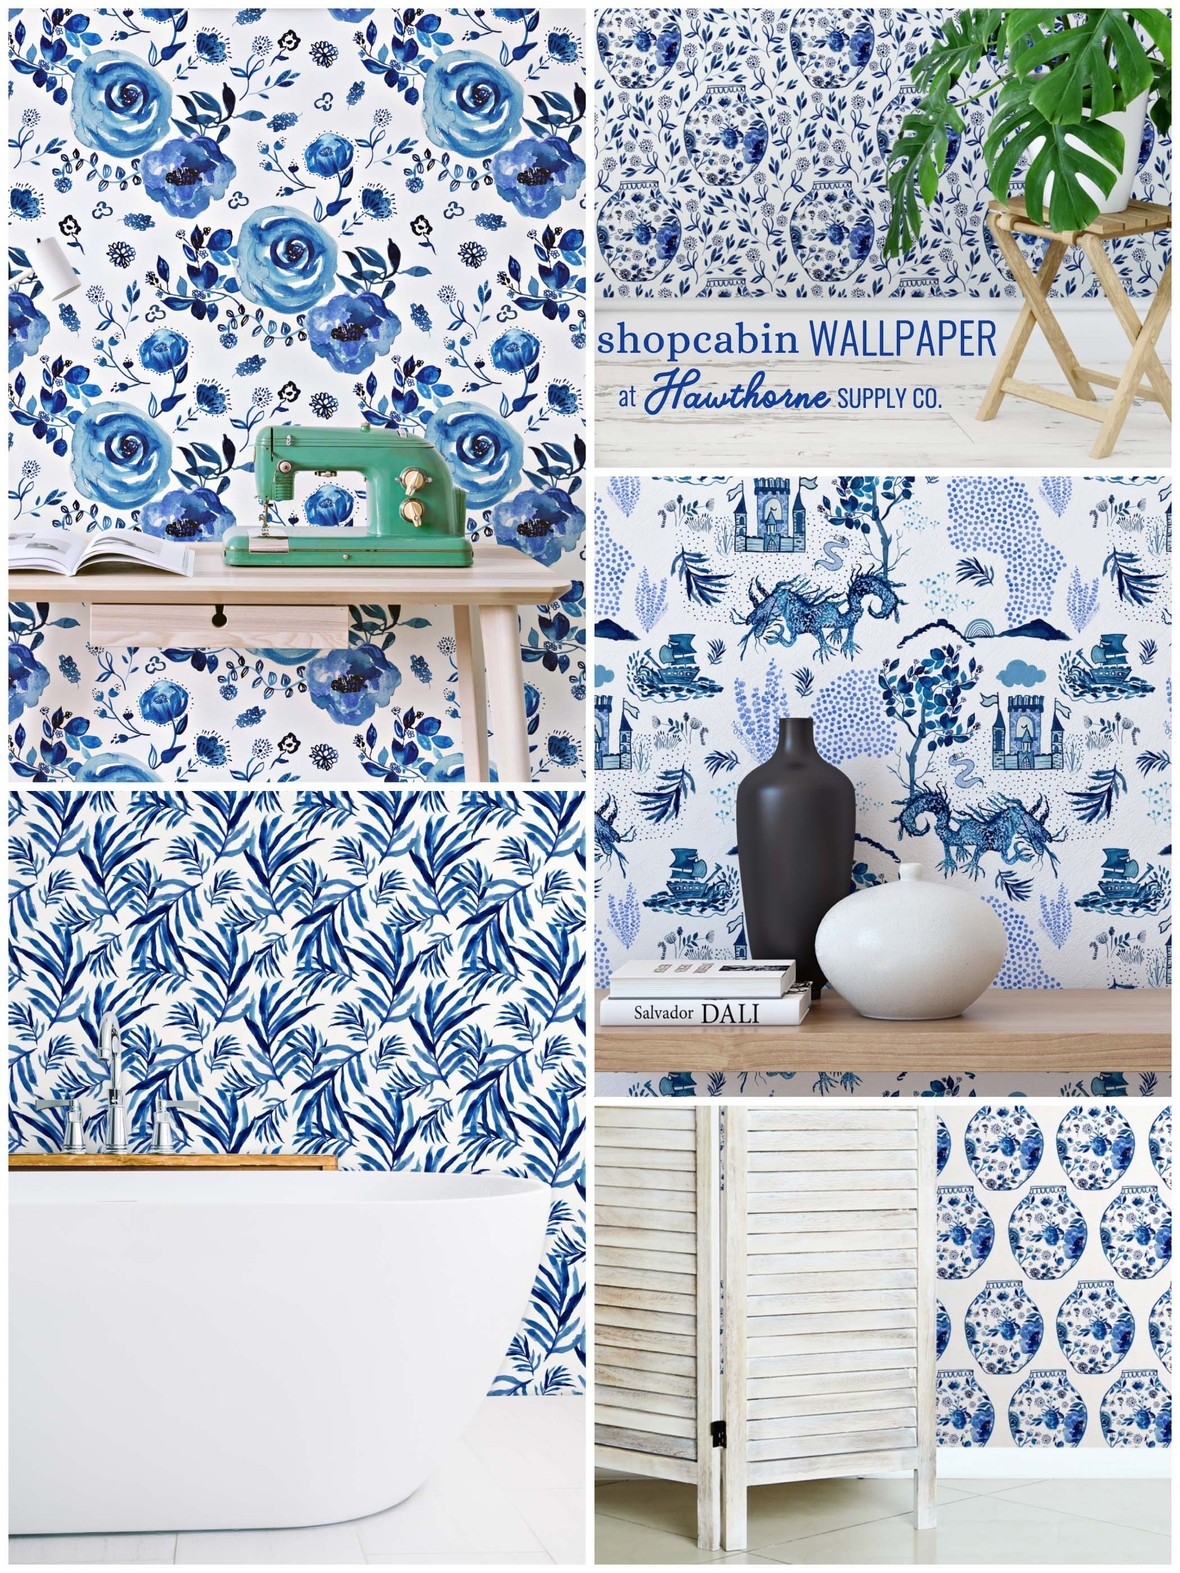 Chinoiserie Wallpaper Shopcabin at Hawthorne Supply Co